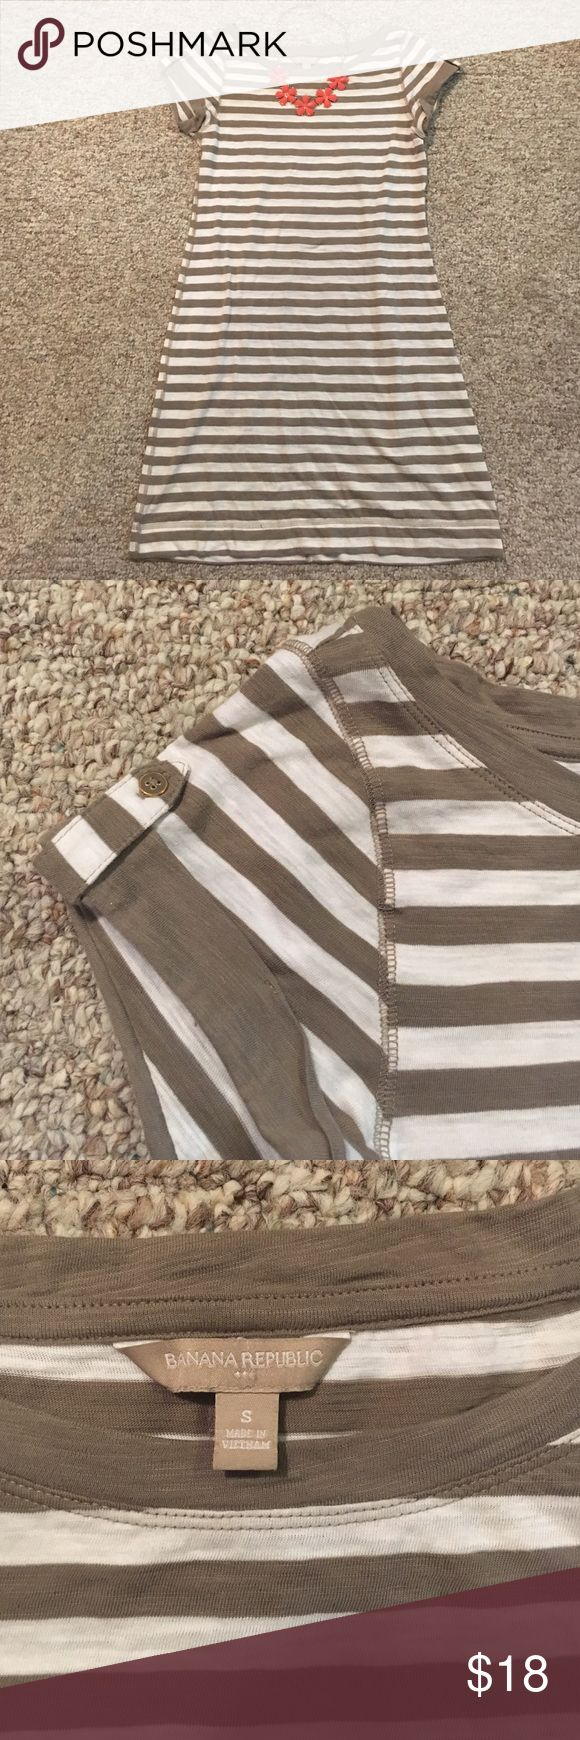 Banana Republic Tshirt Dress Banana Republic Tshirt Dress, size S, grey and white stripped, conservative neckline and hits a little lower than mid thigh Banana Republic Dresses